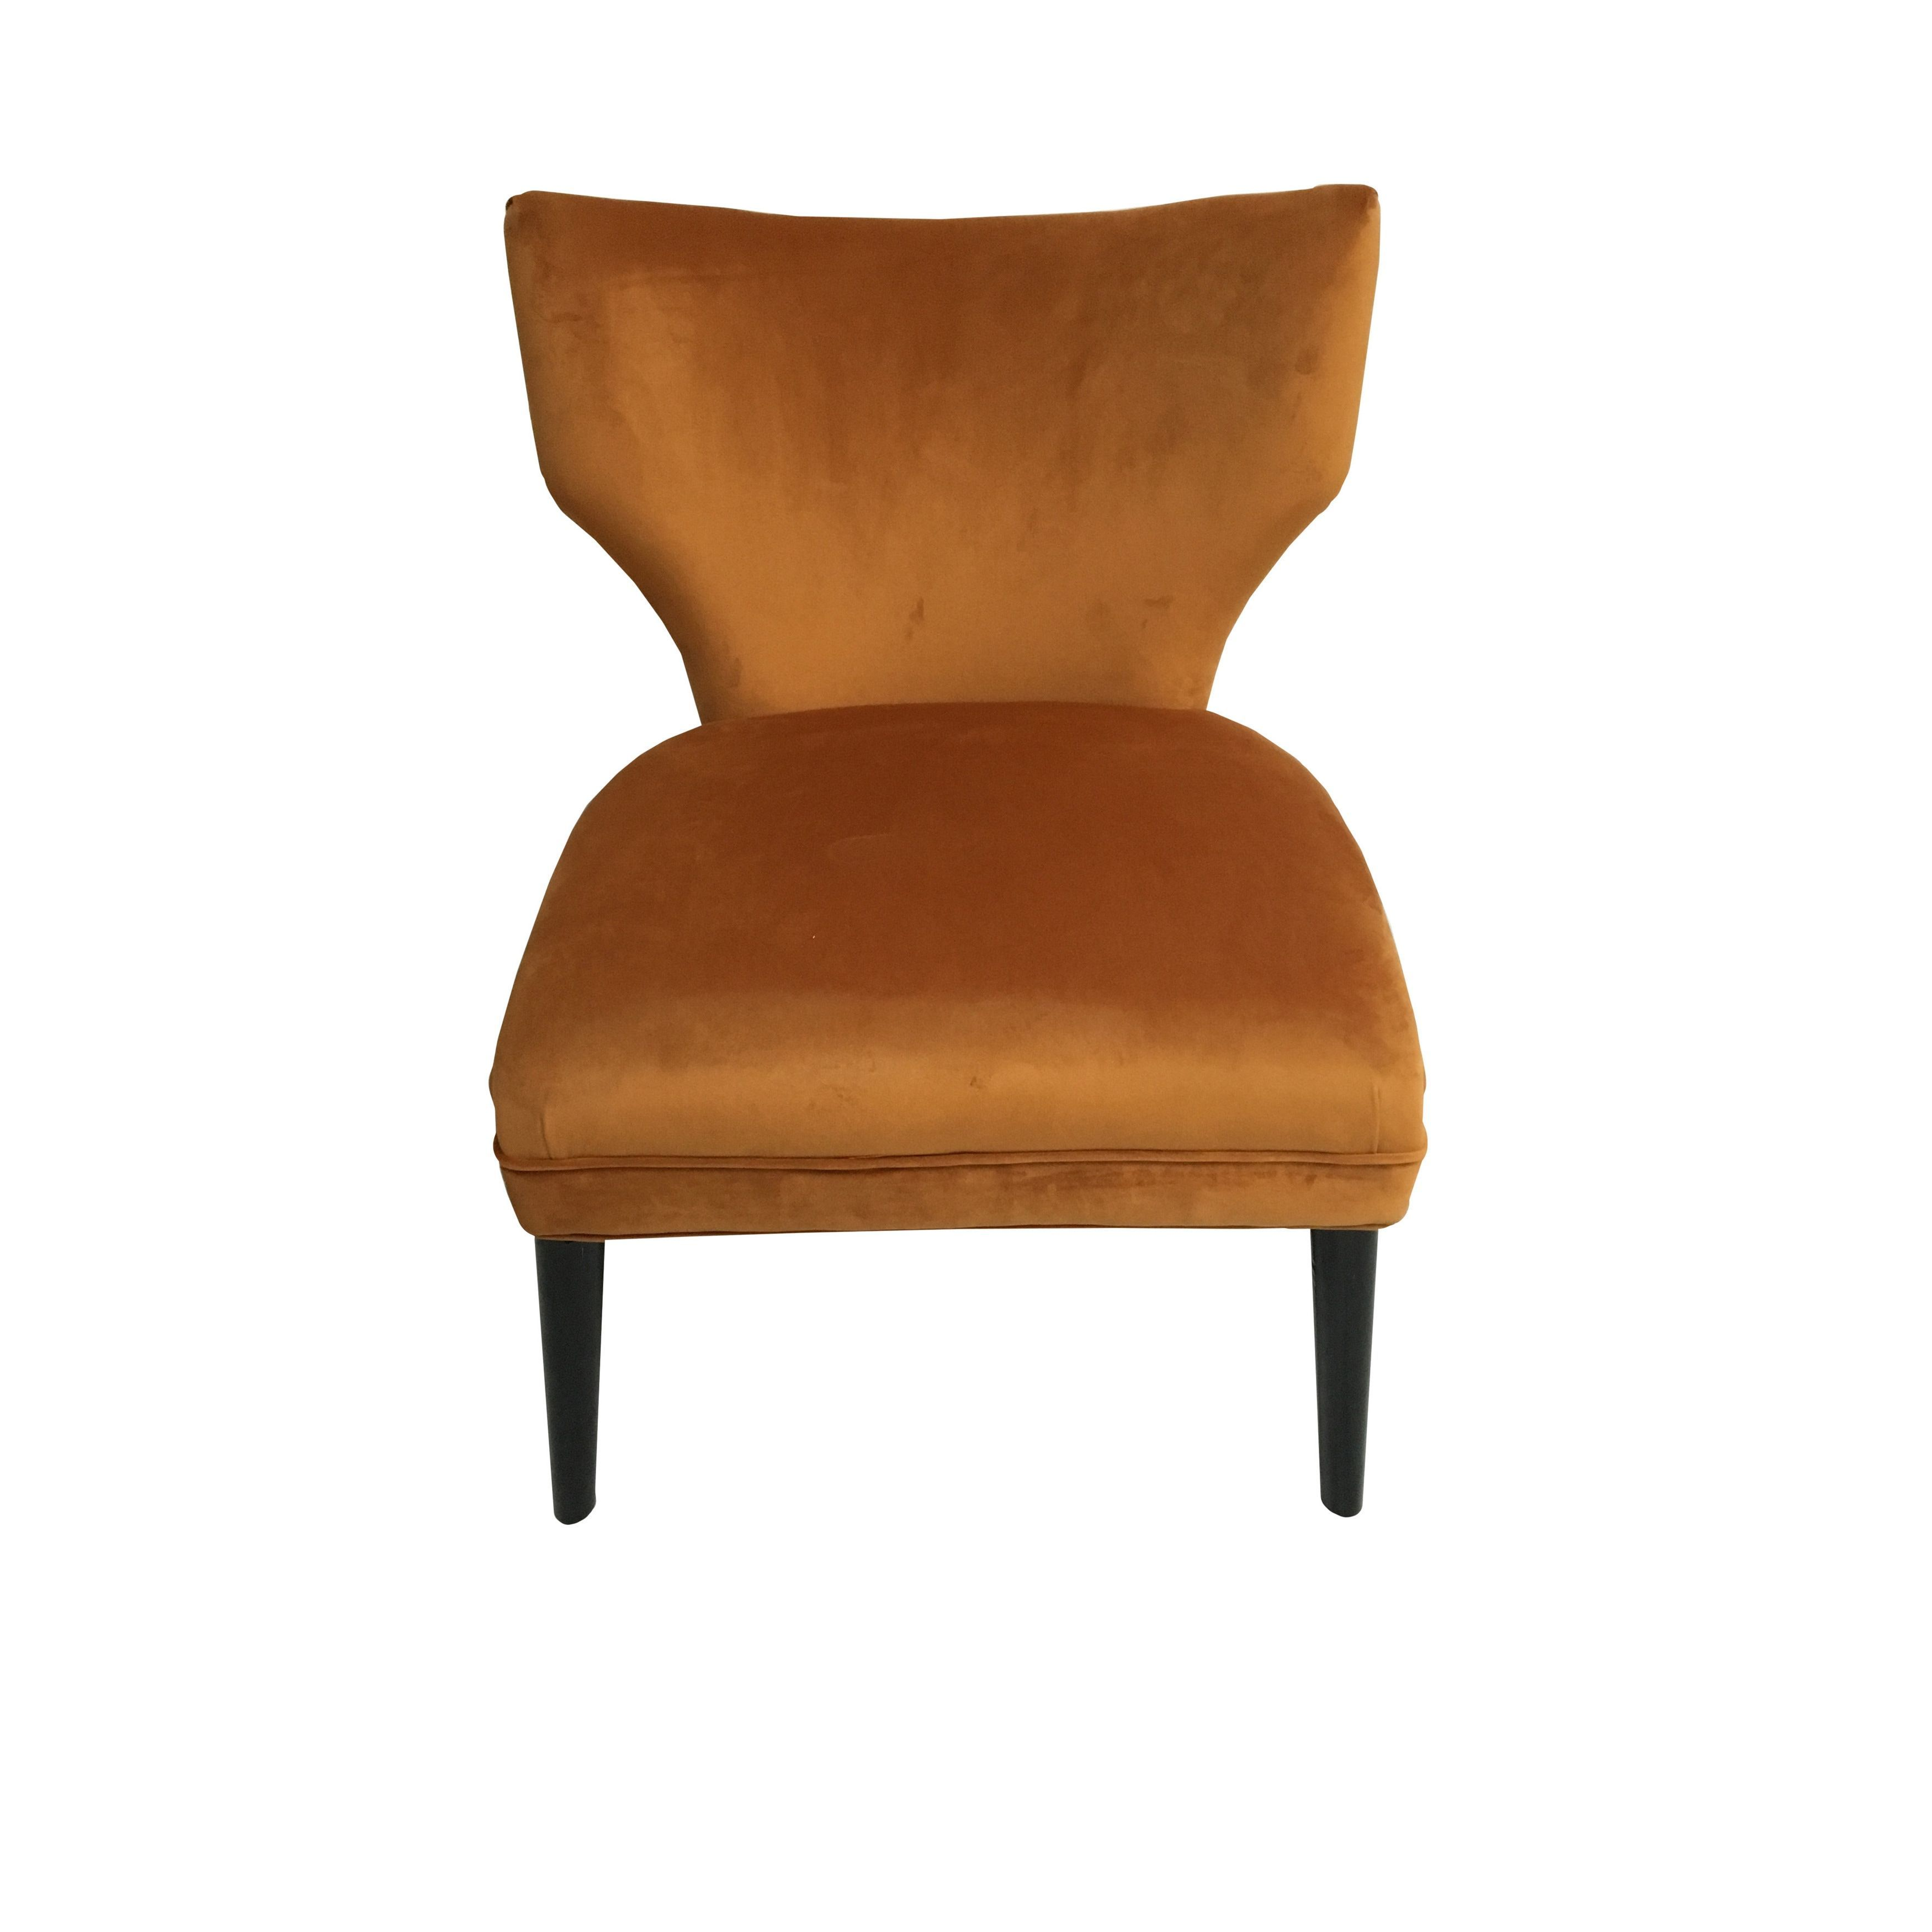 Hd Couture Briar Chair Burnt Orange Mistral Velvet Camry Chair Burnt Orange Mistral Velvet Products Chair Furniture Burnt Orange